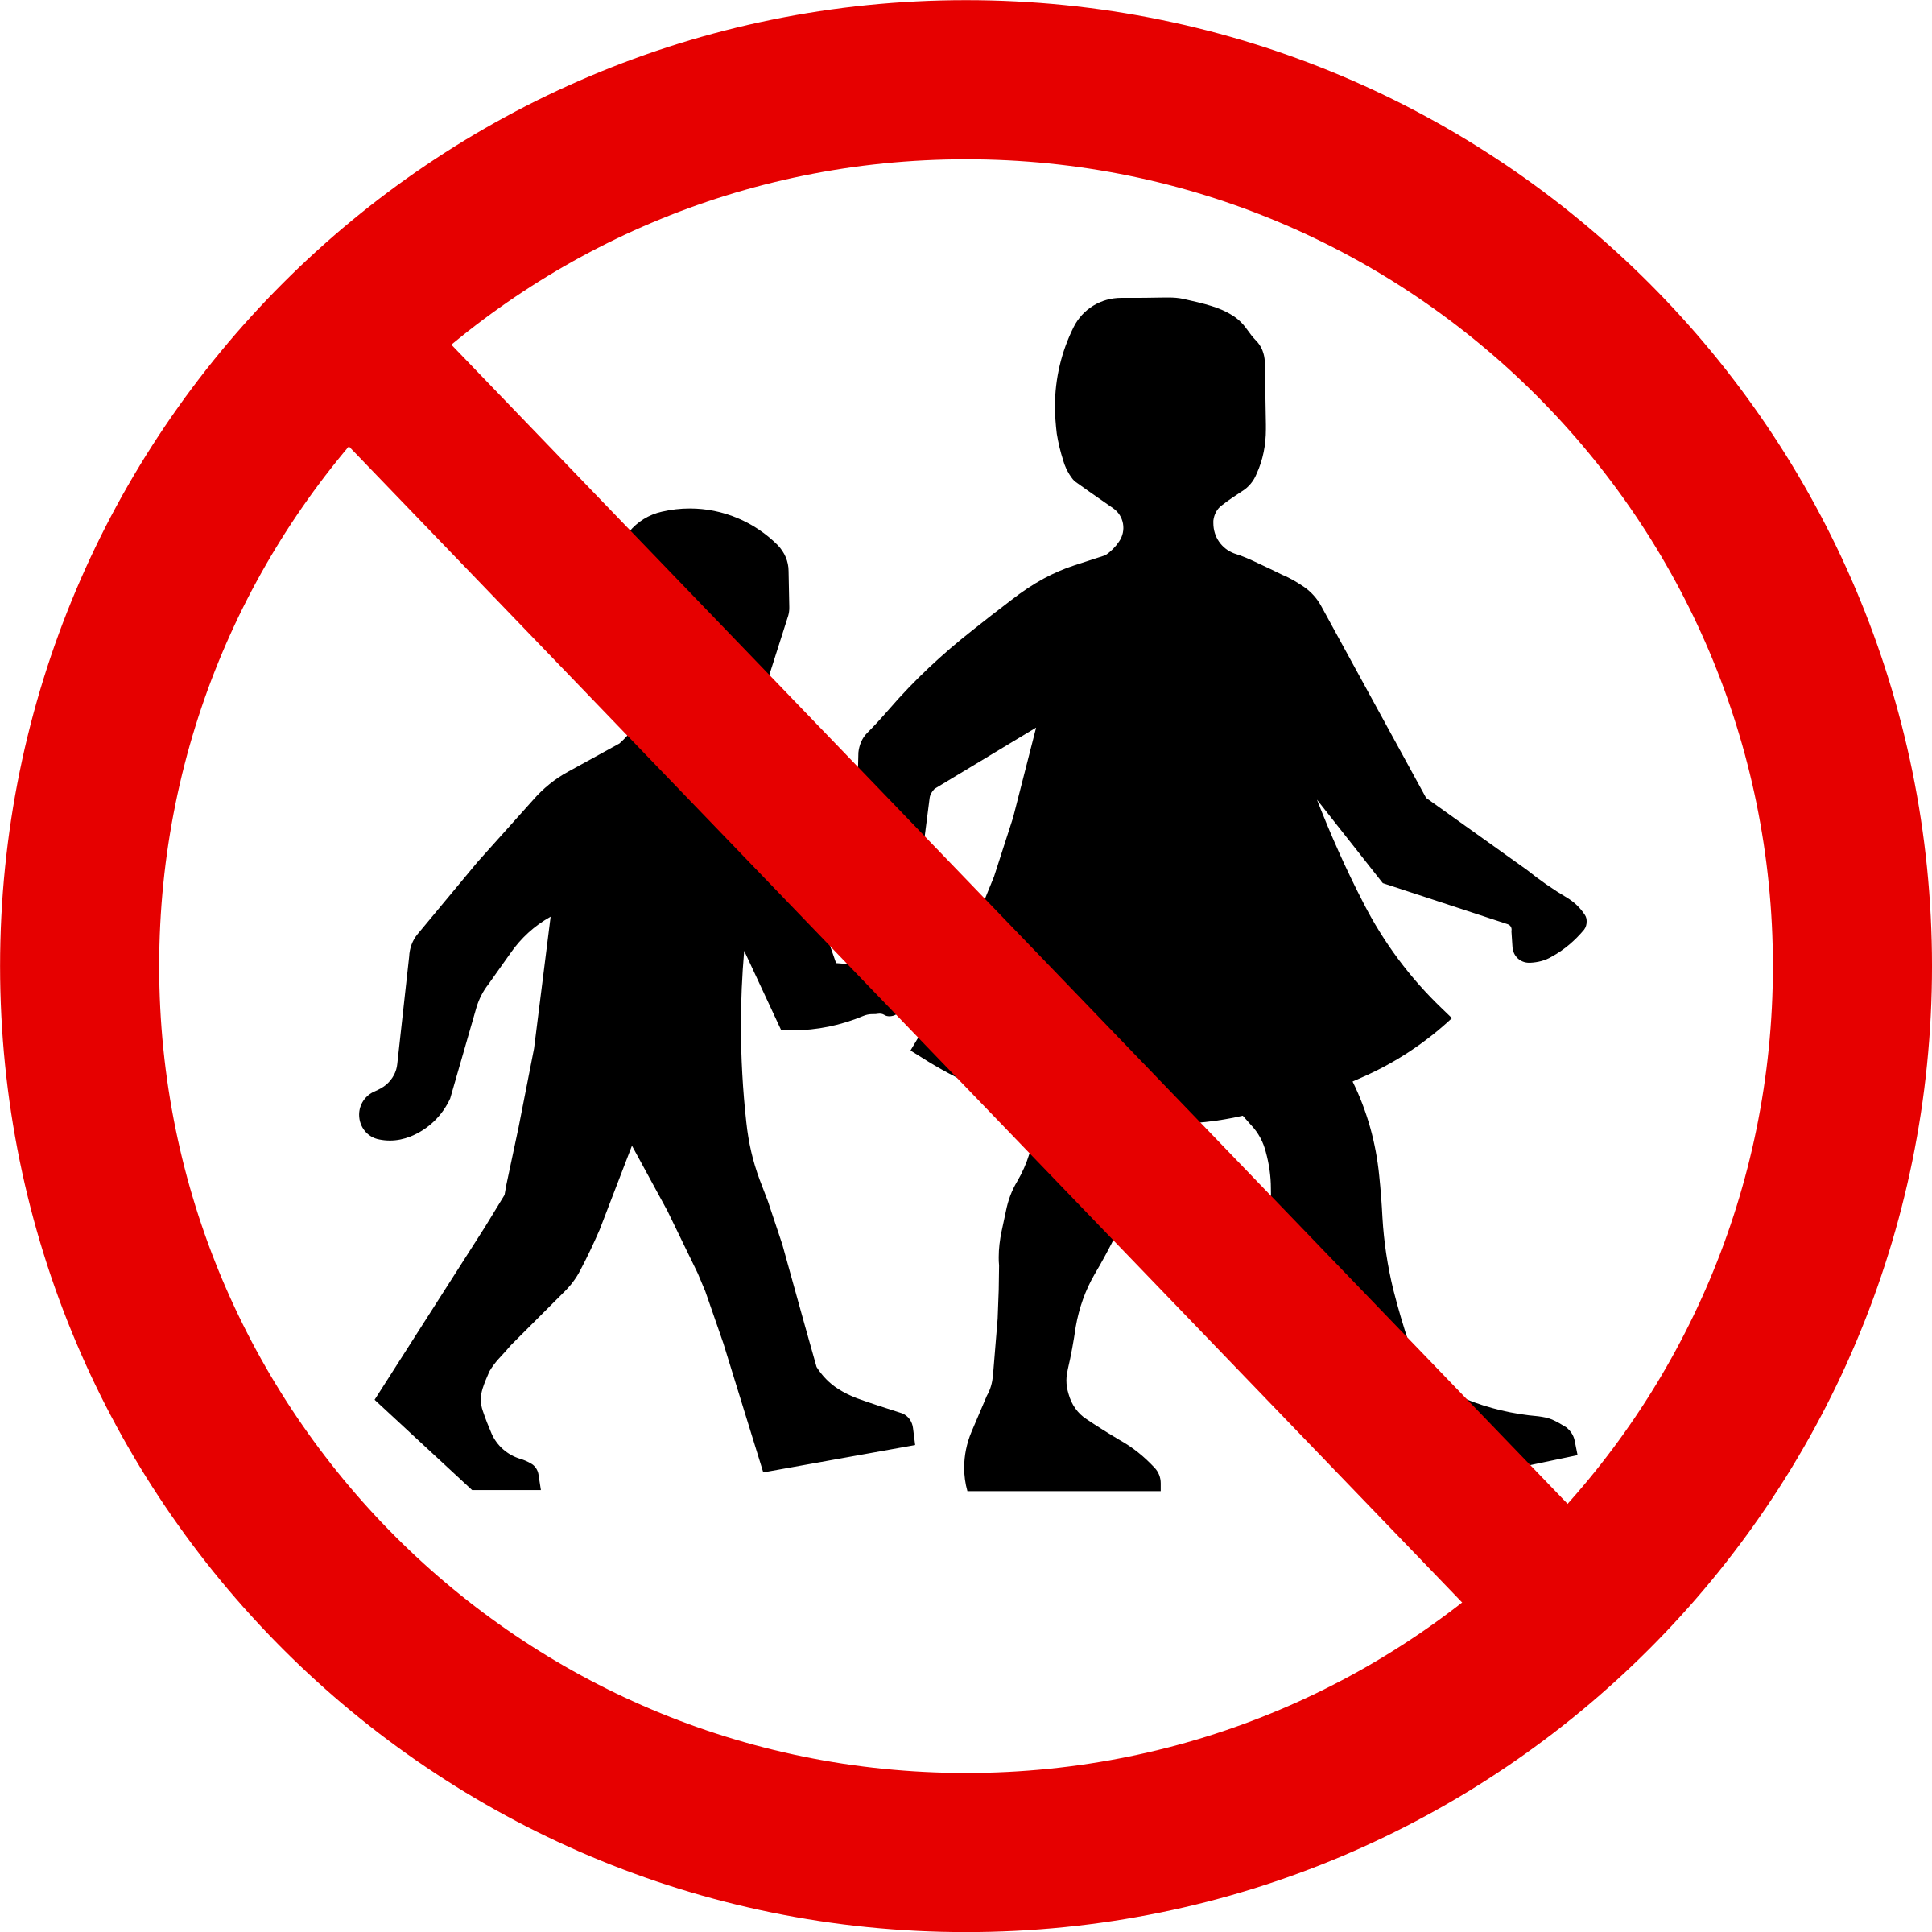 No Children Sign by pydubreucq